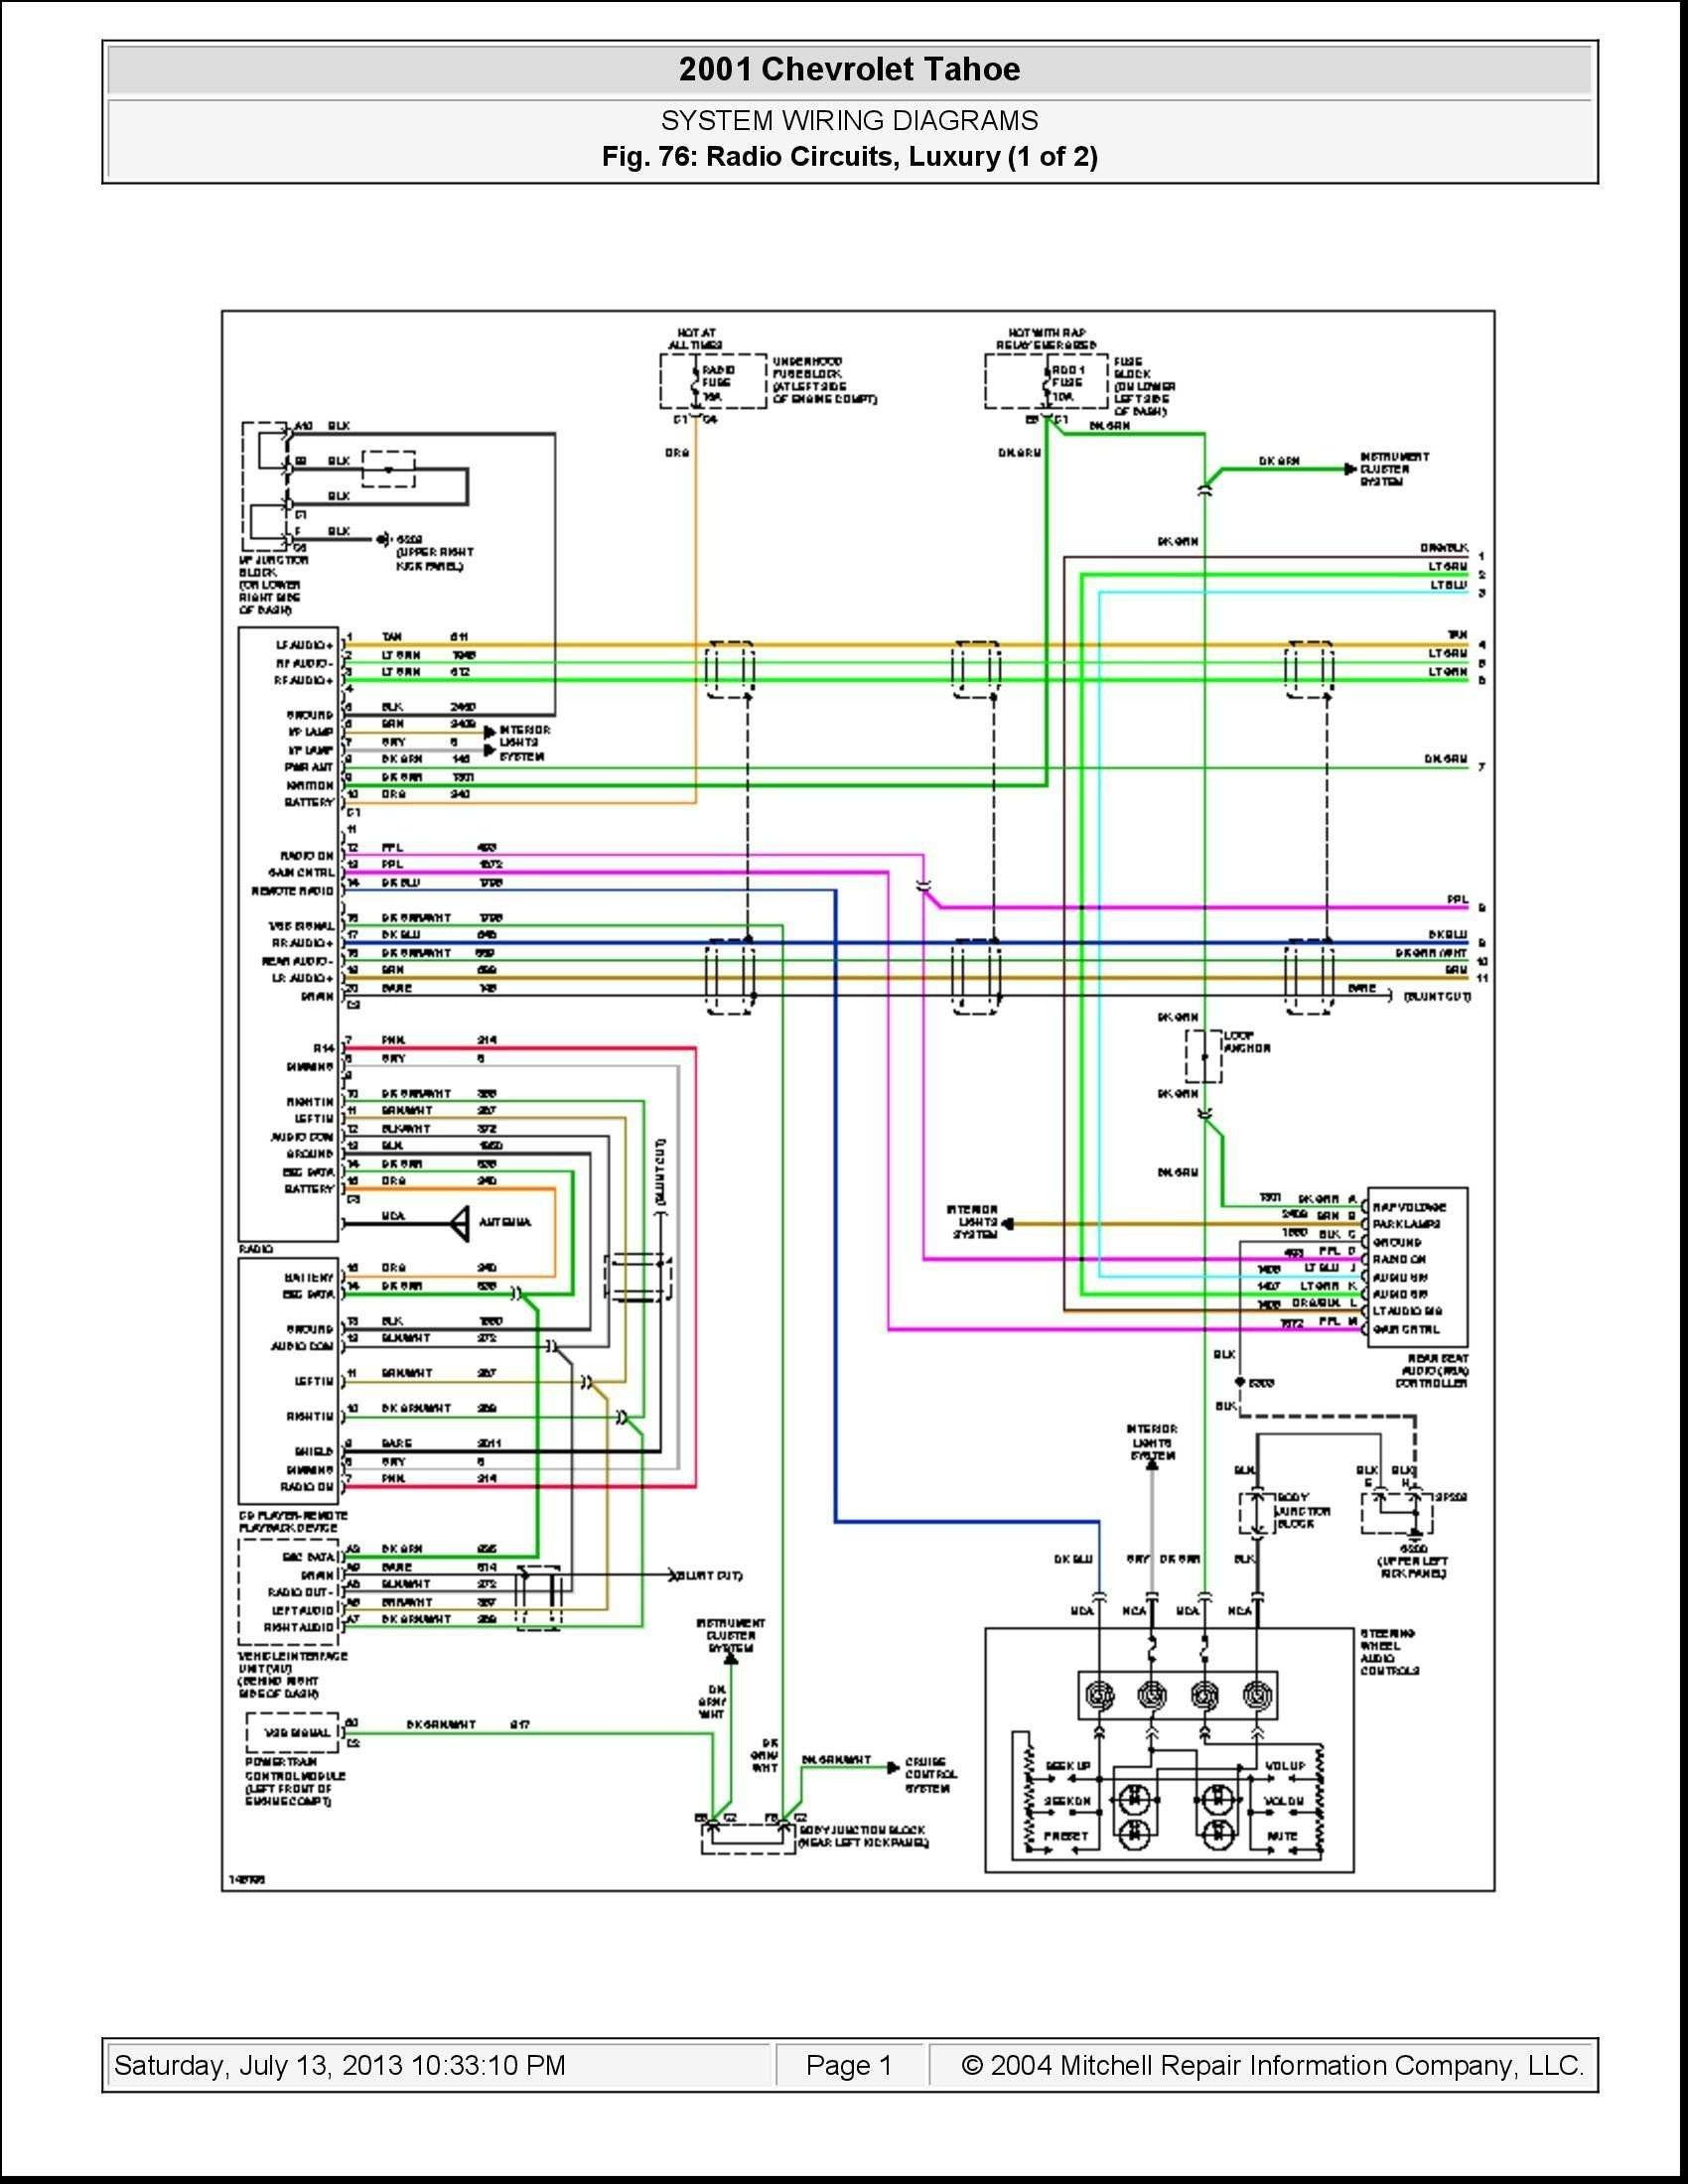 2005 Chevy Silverado Radio Wiring Diagram Best Of In 2020 Chevy Silverado 2003 Chevy Silverado Chevy Trailblazer